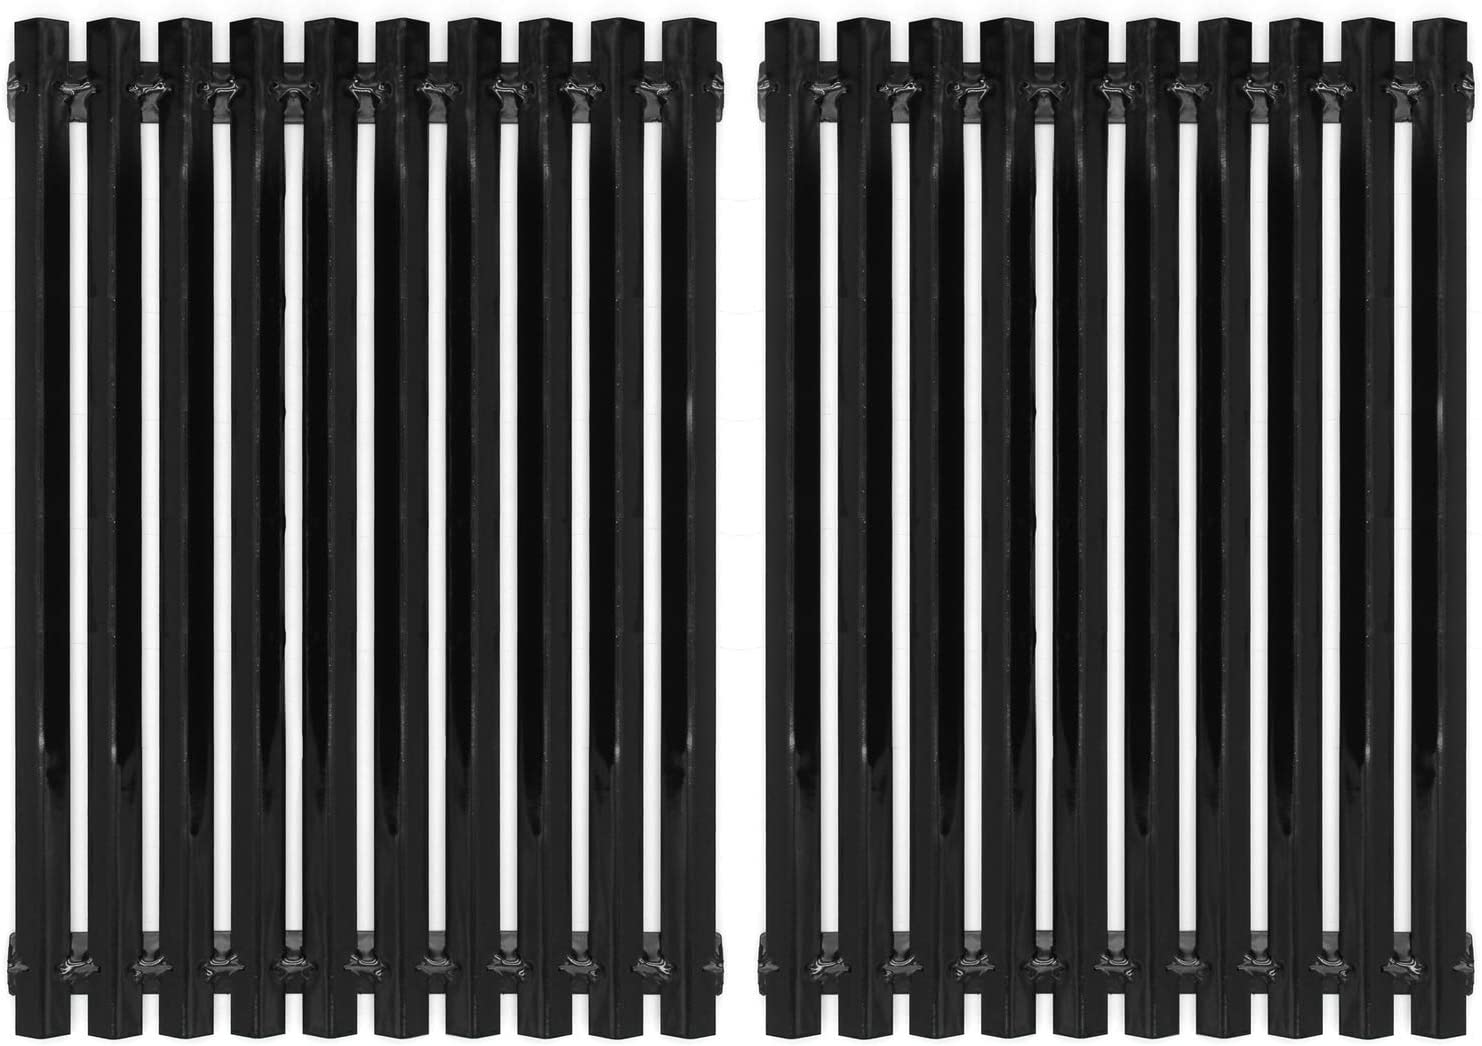 VICOOL Lowest price challenge 17 3 16 inch Porcelain Cooking P Steel Max 60% OFF Replacement Grates